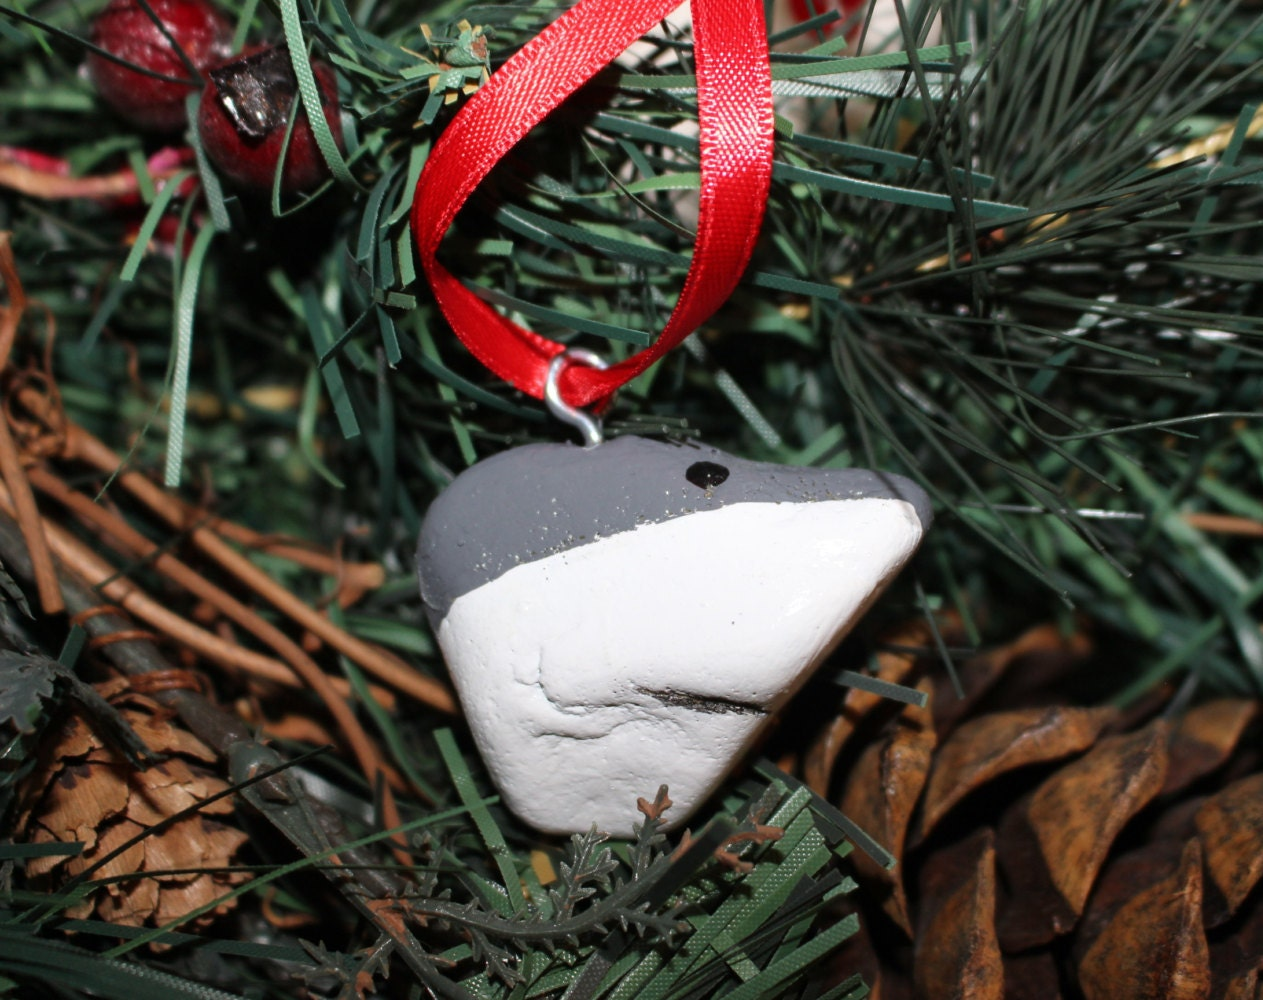 Great white shark christmas ornaments - Like This Item